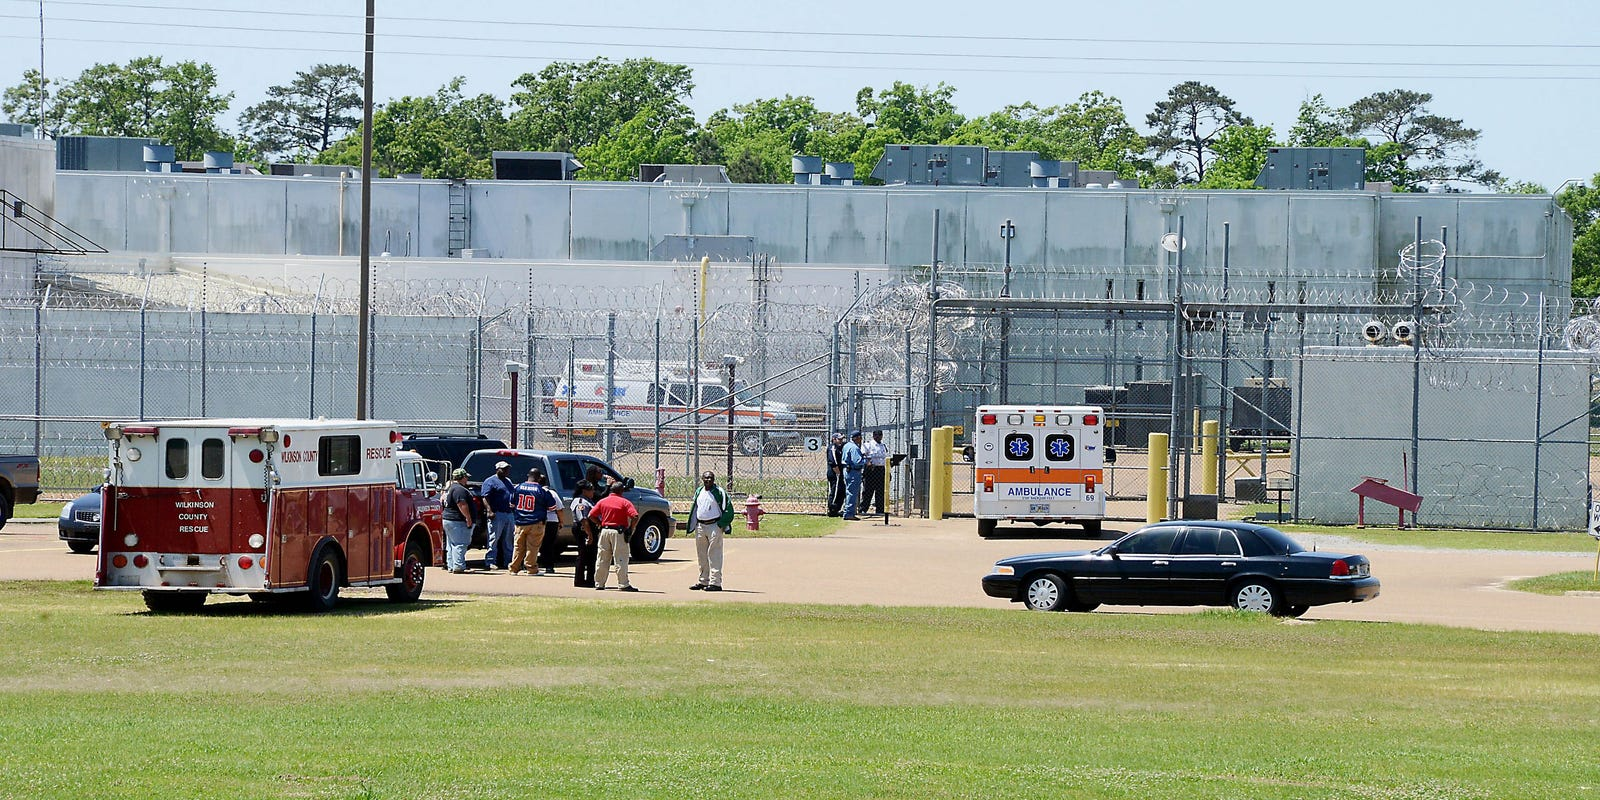 Inmate assault on nurse leads to lawsuit against private prison